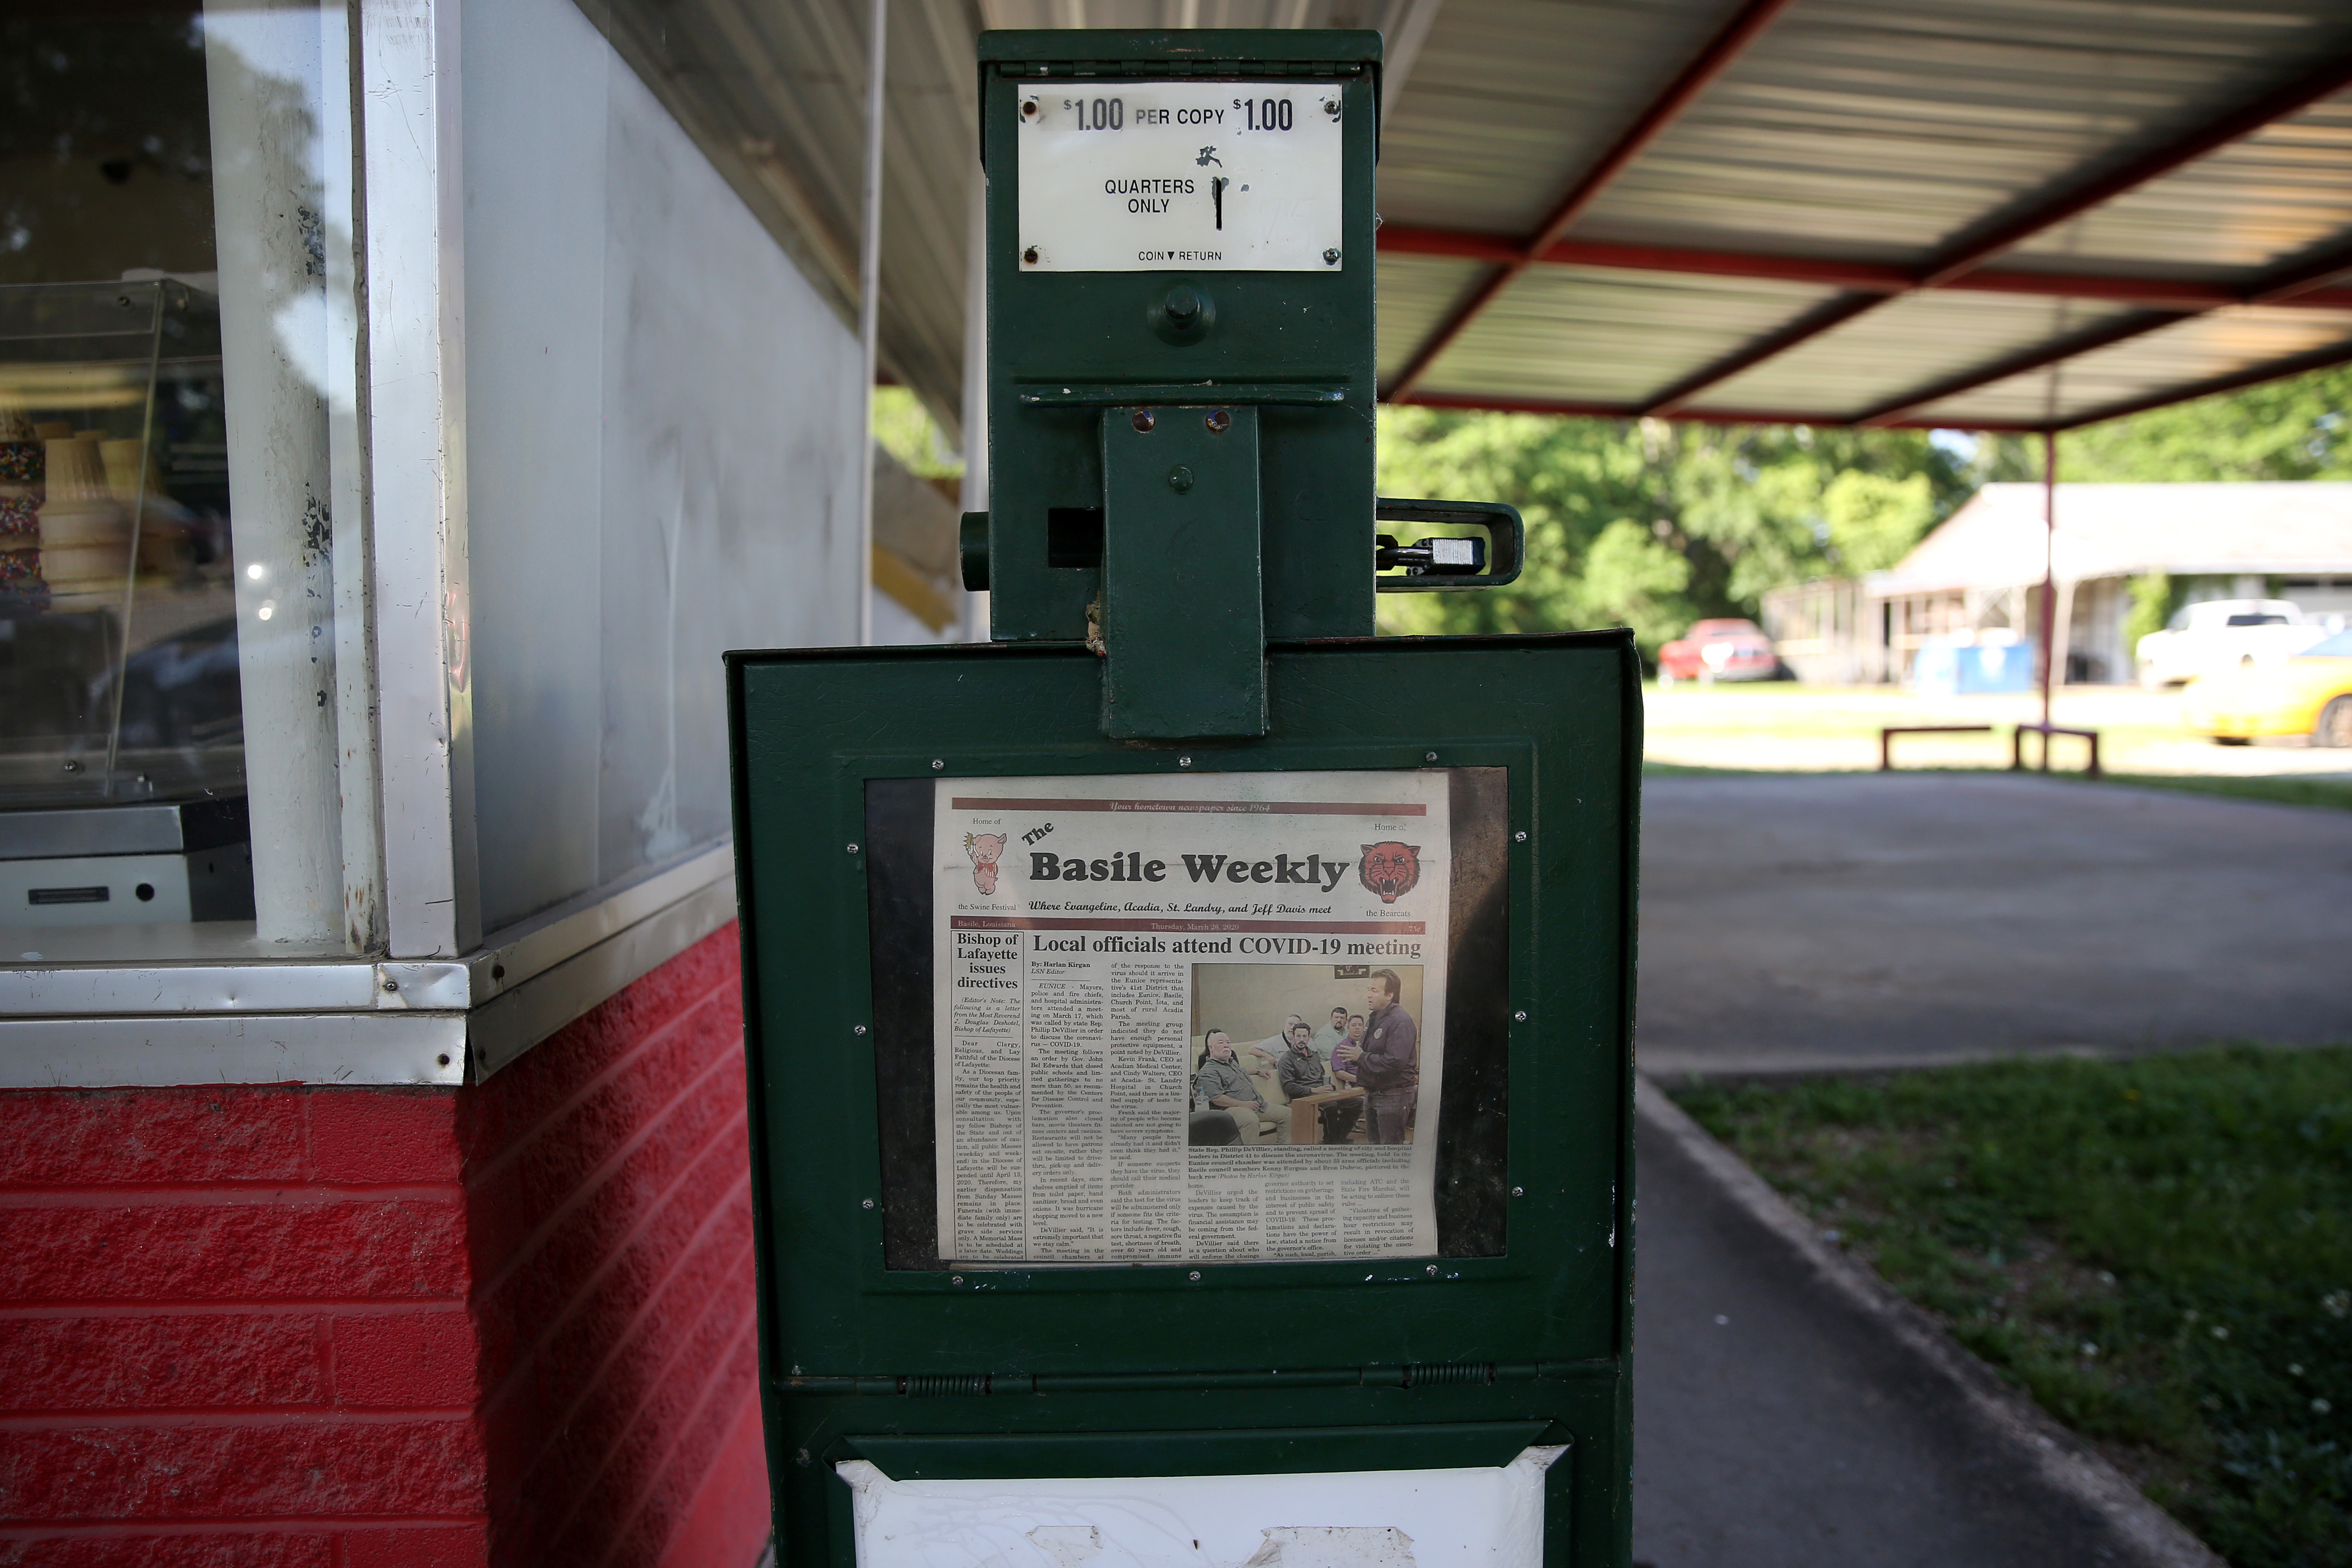 A newspaper vending machine is pictured in Basile amid a coronavirus disease (COVID-19) outbreak across the state of Louisiana, U.S., March 26, 2020.  REUTERS/Jonathan Bachman - RC2YWF9XD6X0